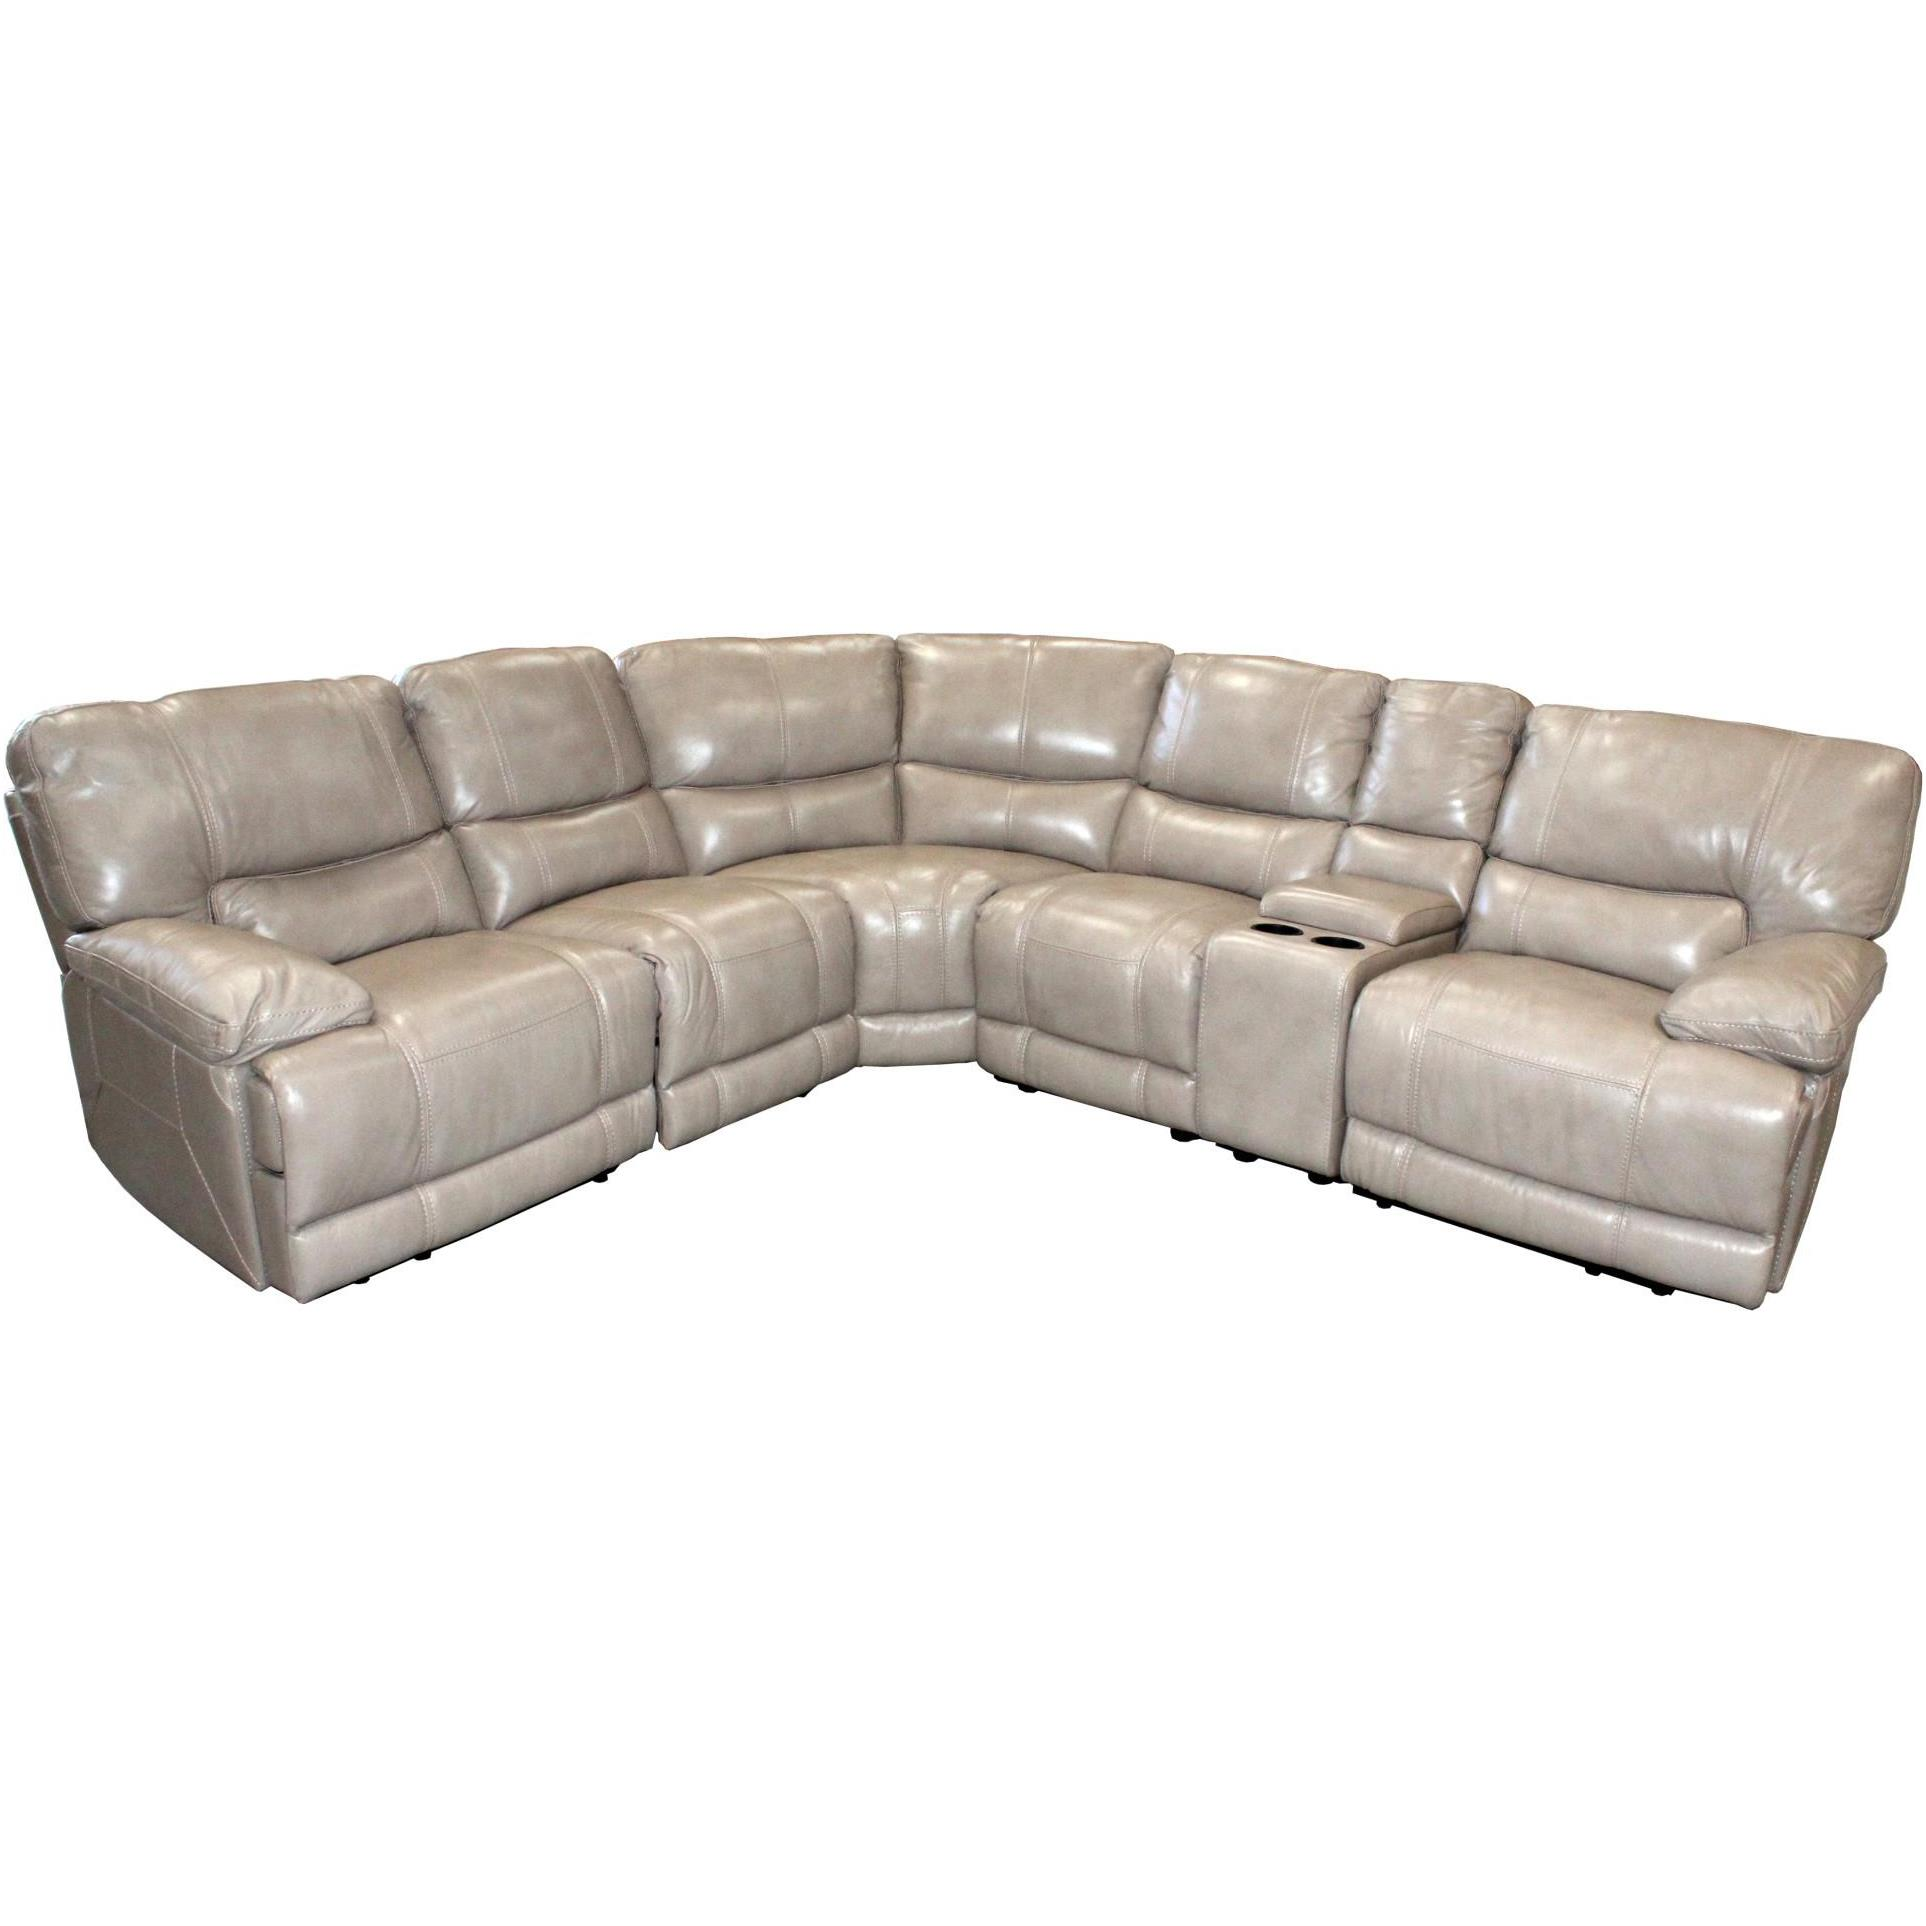 Parker Living Socrates Casual Sectional with Storage Console - Item Number: MS-811LP+860+810P+850+840+811RP-LA